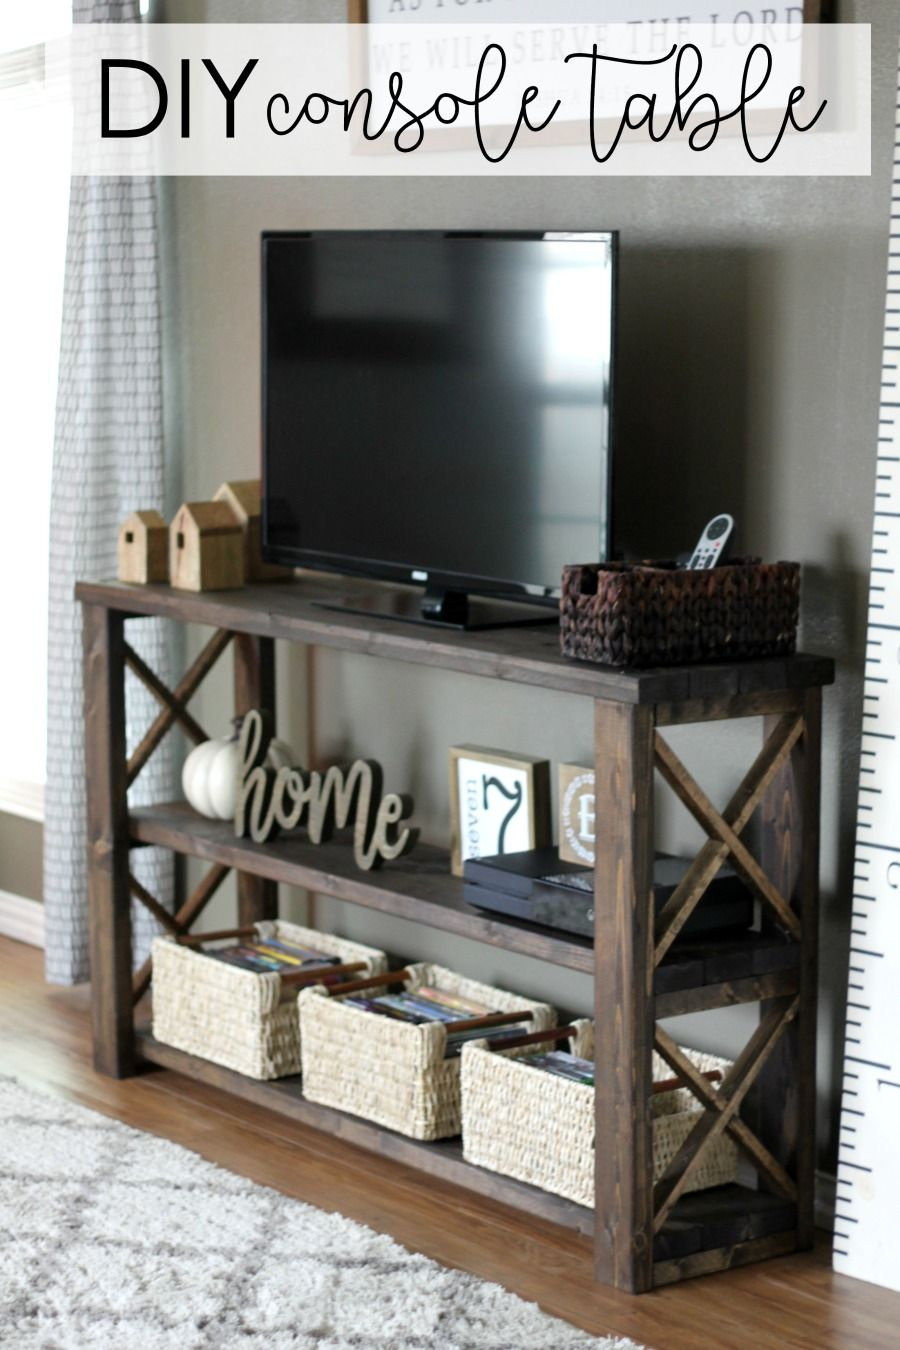 1565261388 14 farmhouse tv stand ideas with extra charming designs - Farmhouse TV Stand Ideas With Extra Charming Designs